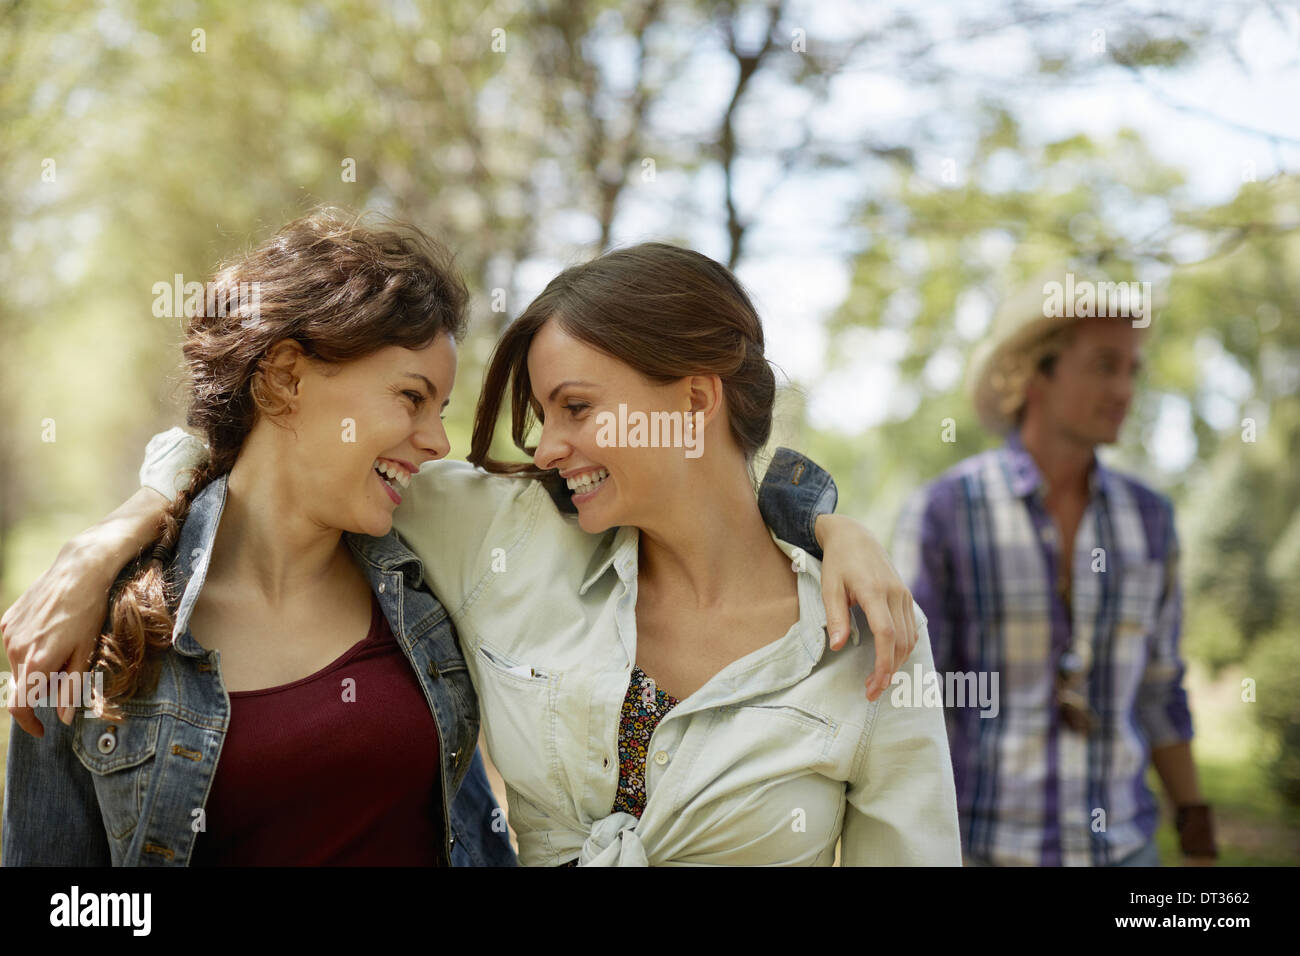 Two friends smiling at each other - Stock Image